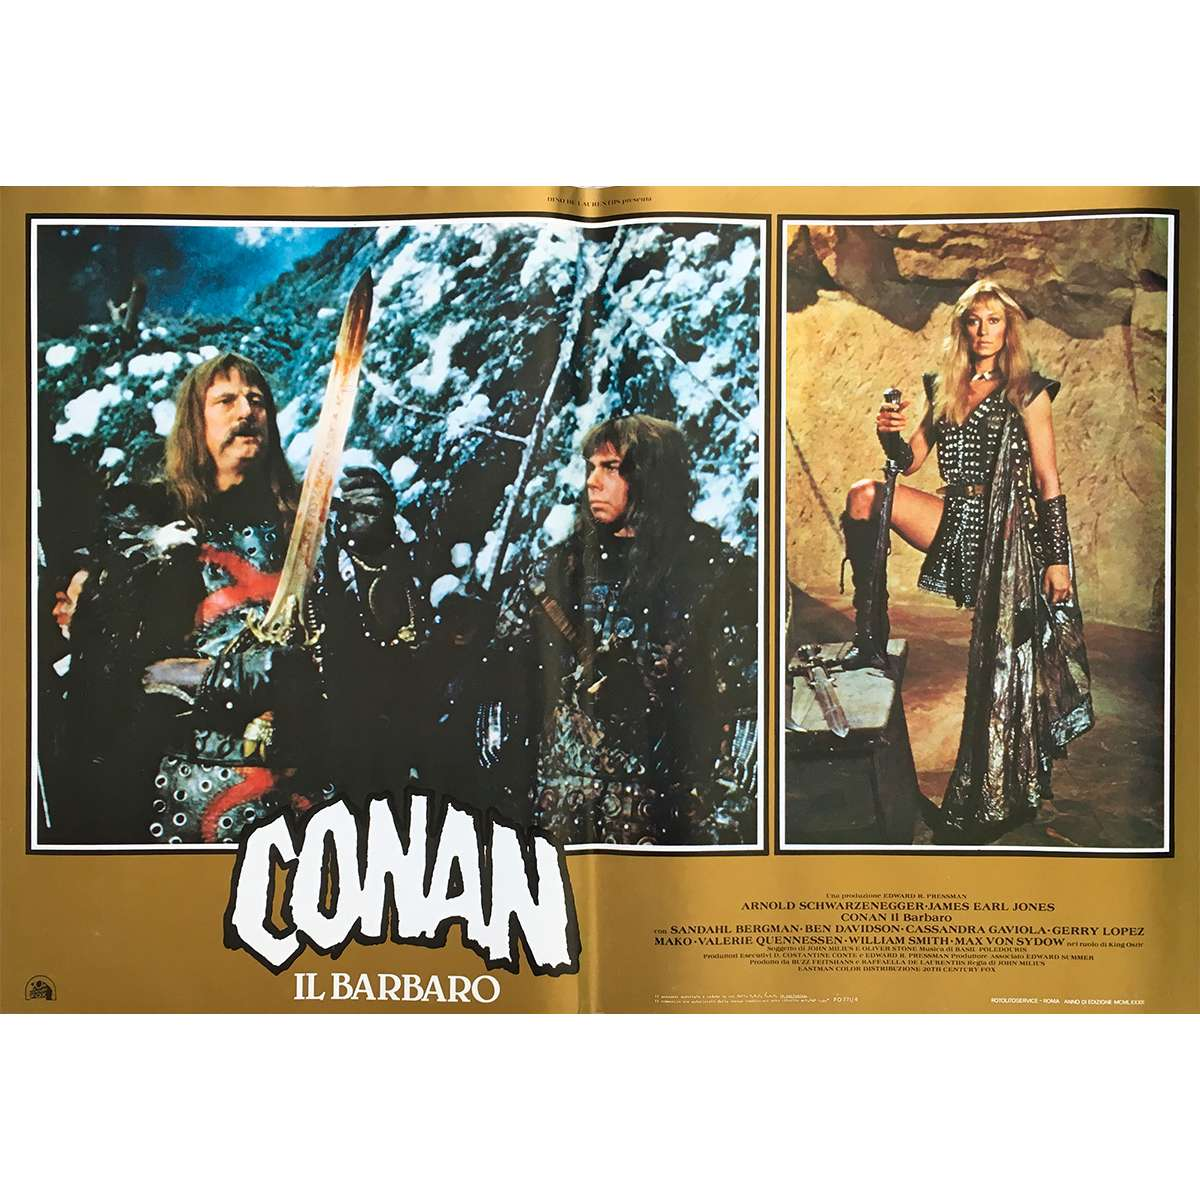 CONAN THE BARBARIAN Movie Poster 18x26 In